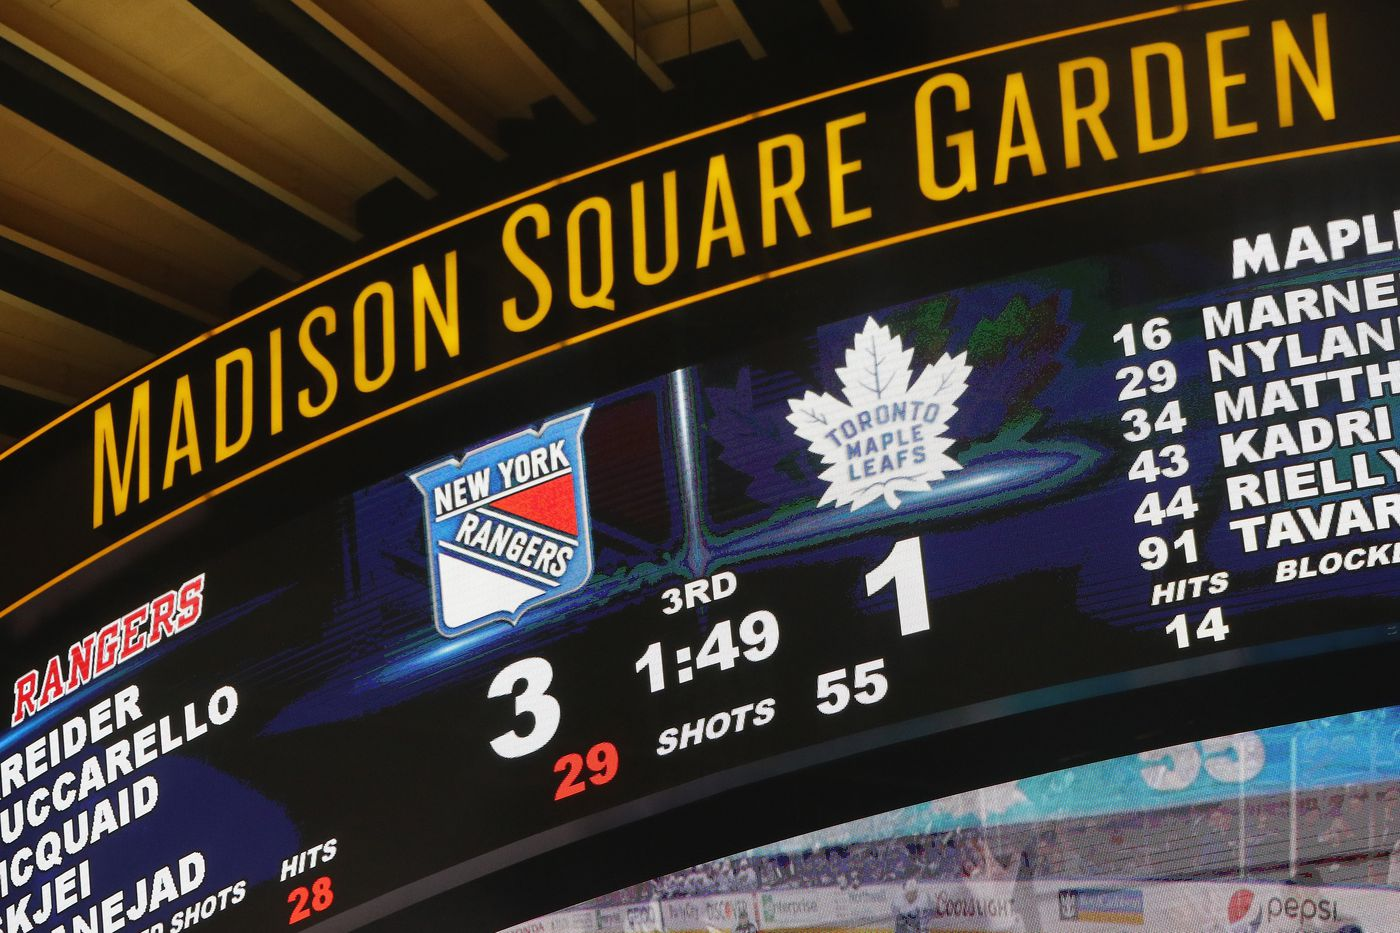 Madison Square Garden Calendar January 2020 New York Rangers Schedule: Team Announces Dates for 2019 20 NHL